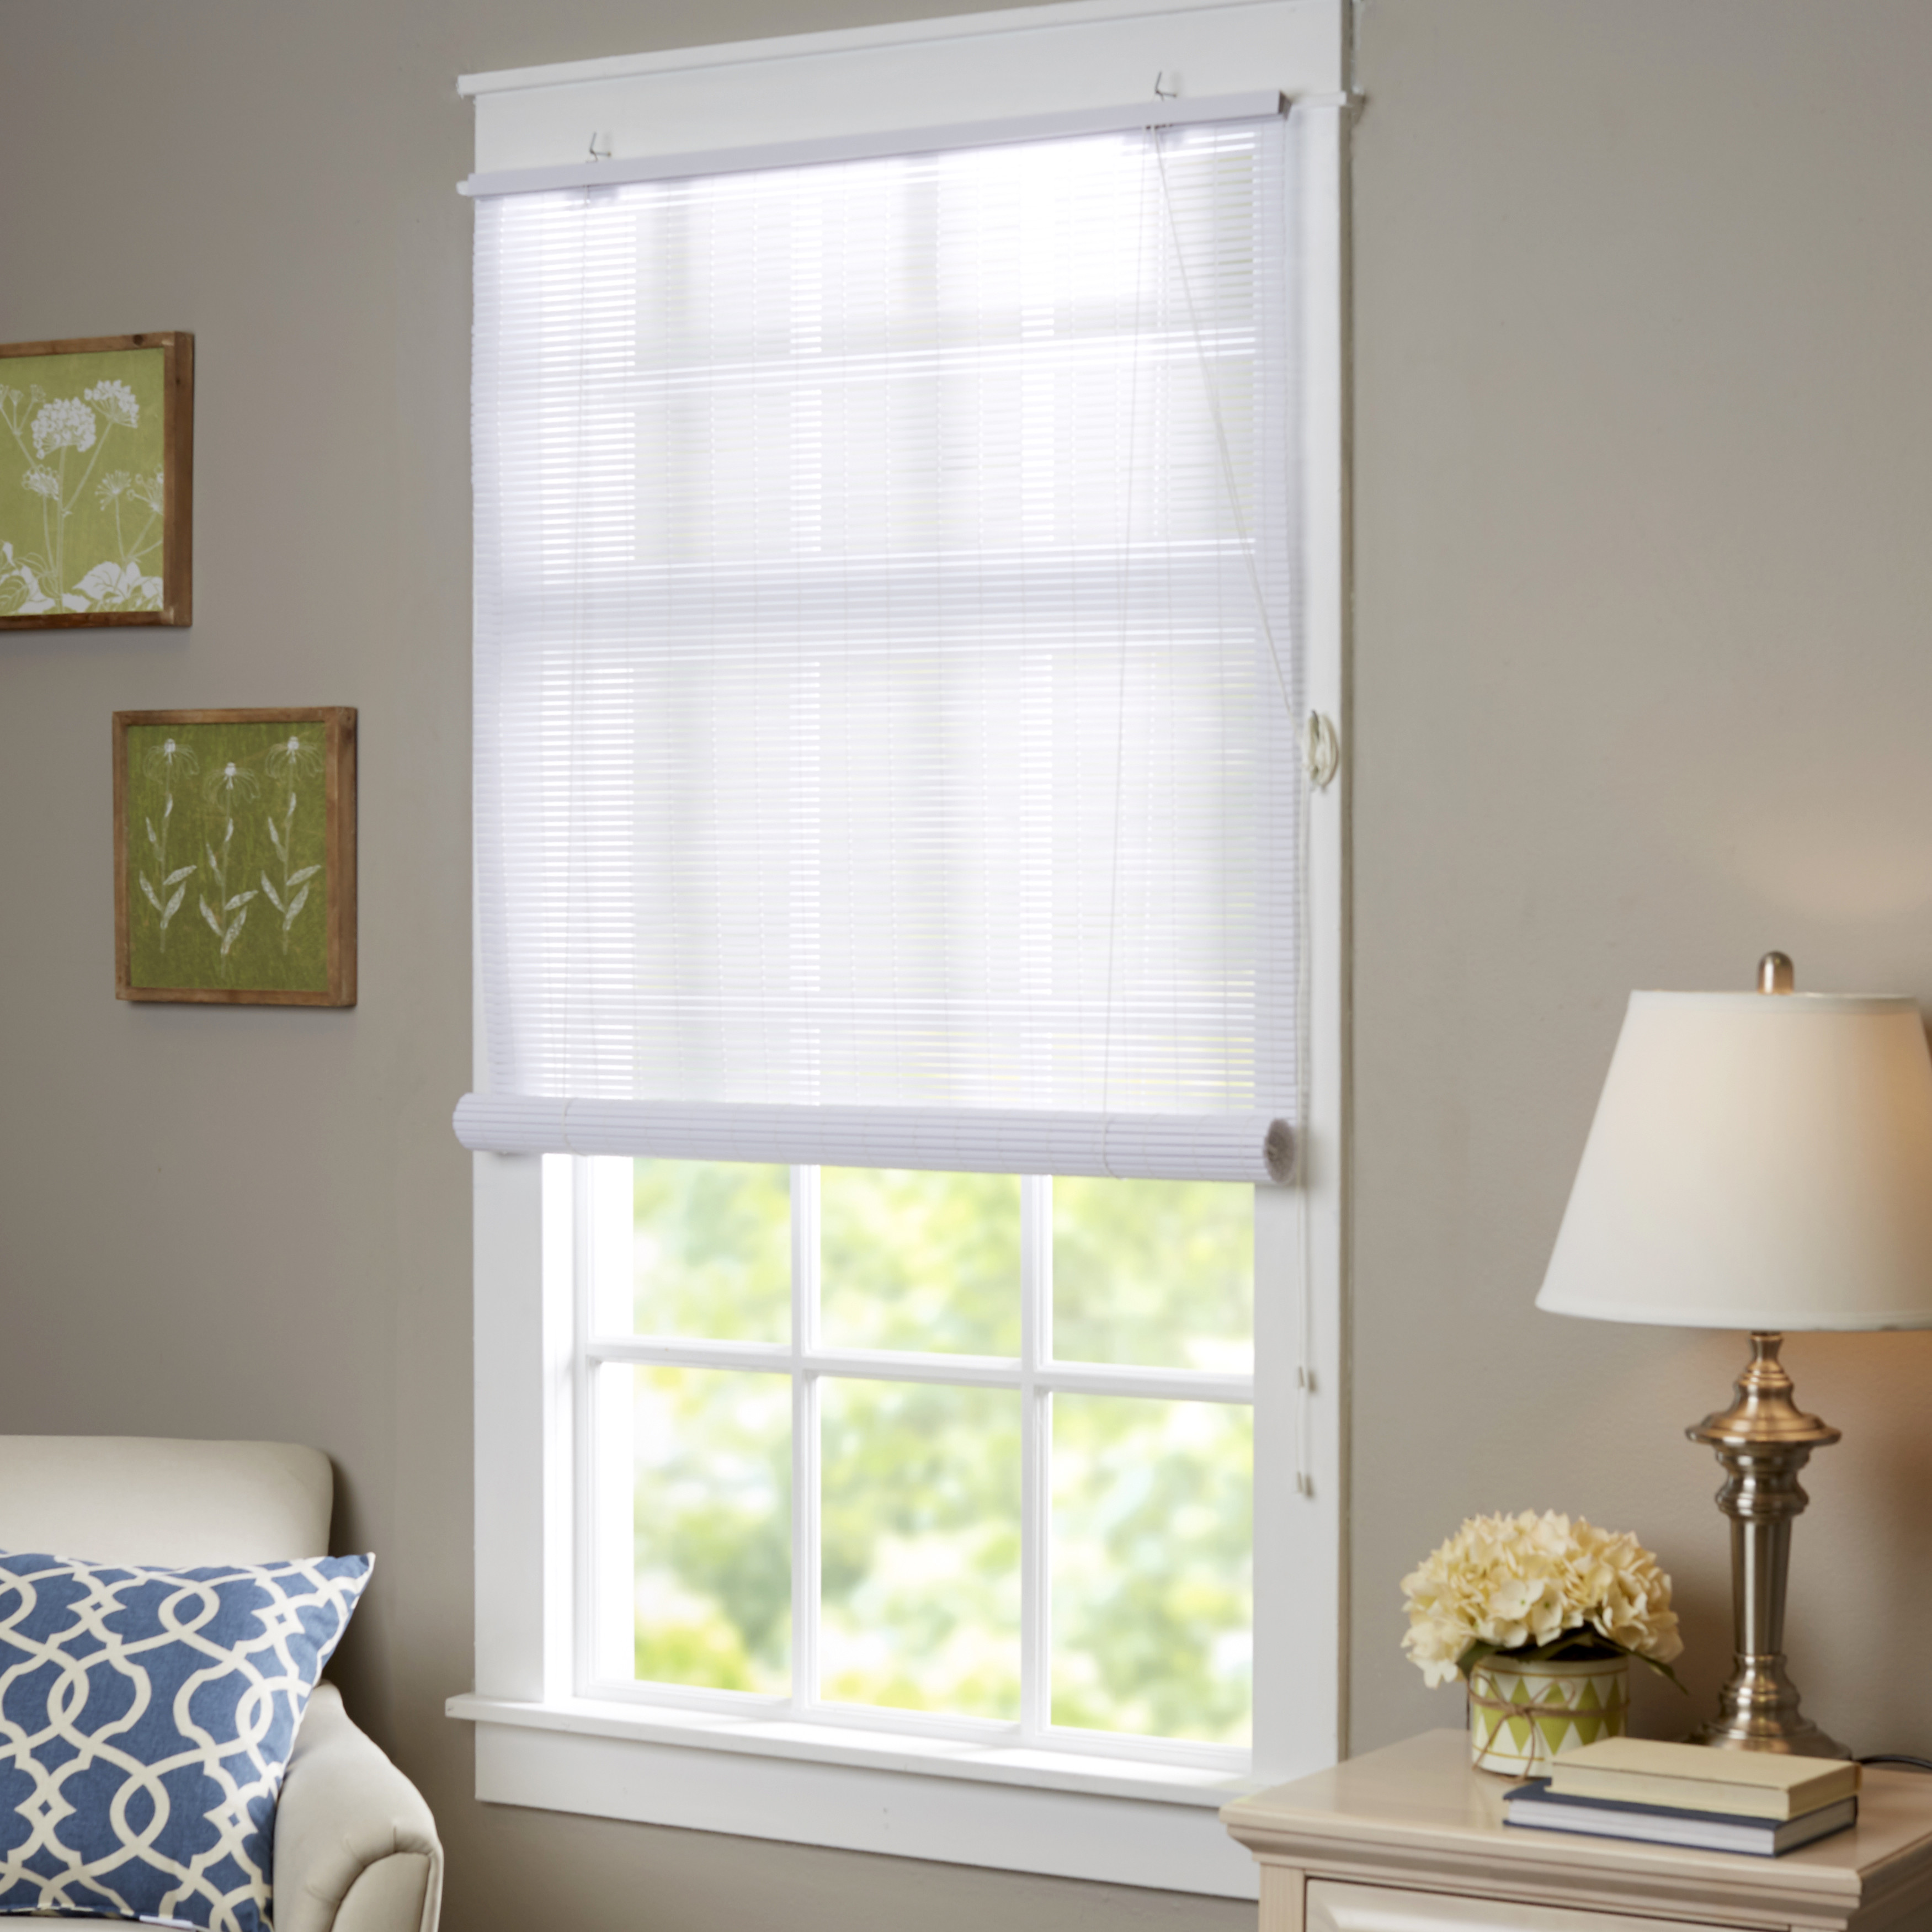 Shop Vac Menards | Menards Window Blinds | Sidelight Window Treatments